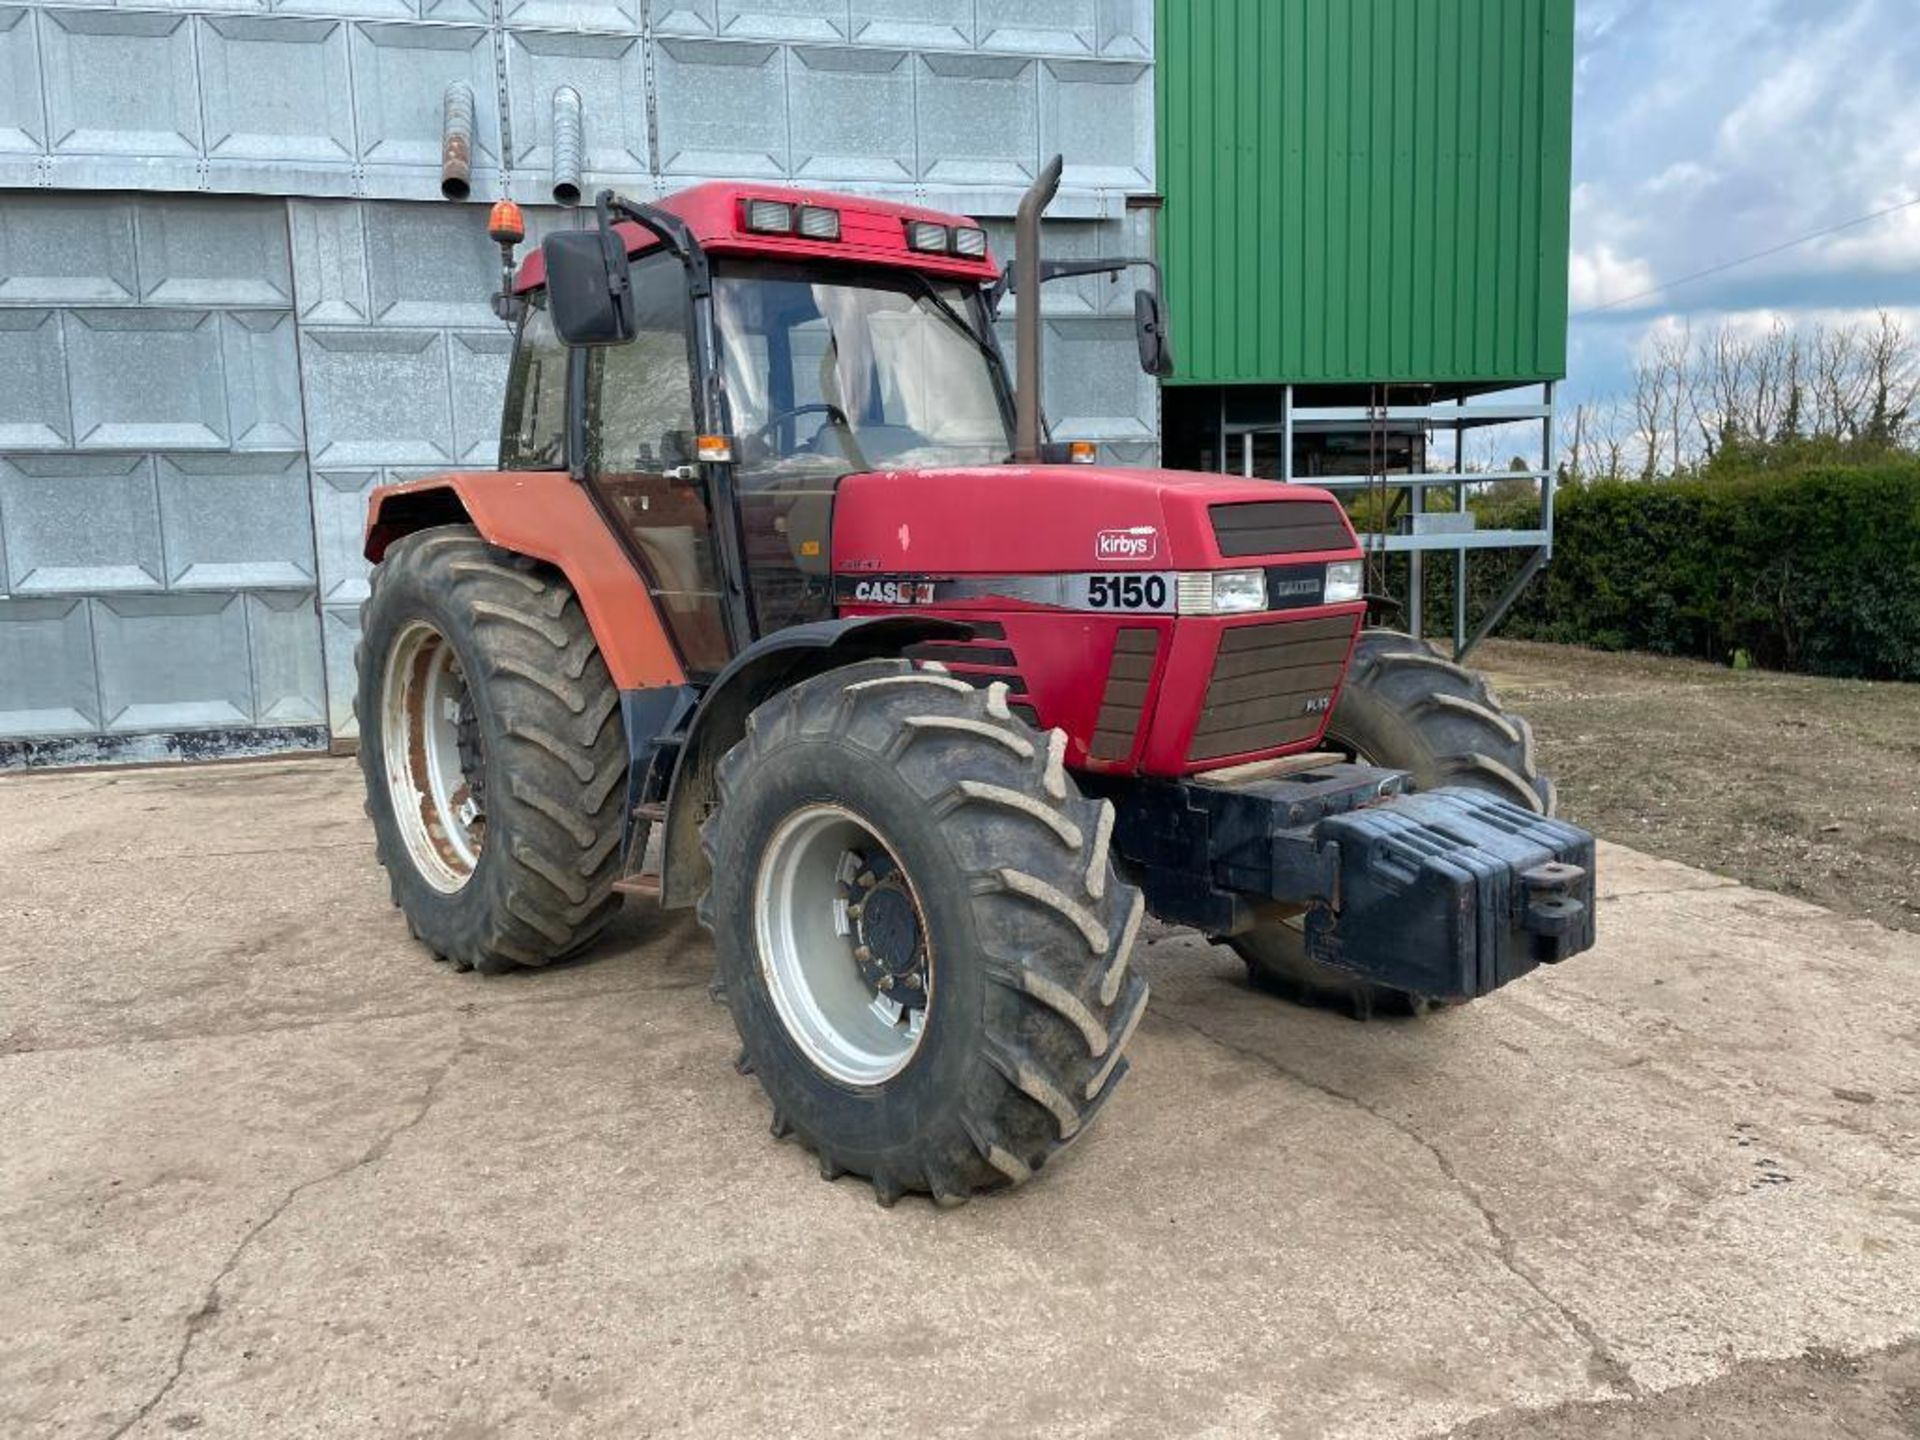 1997 Case IH 5150 Maxxum Plus Powershift 4wd tractor with 2 spools, PUH and front wafer weights on 1 - Image 7 of 13